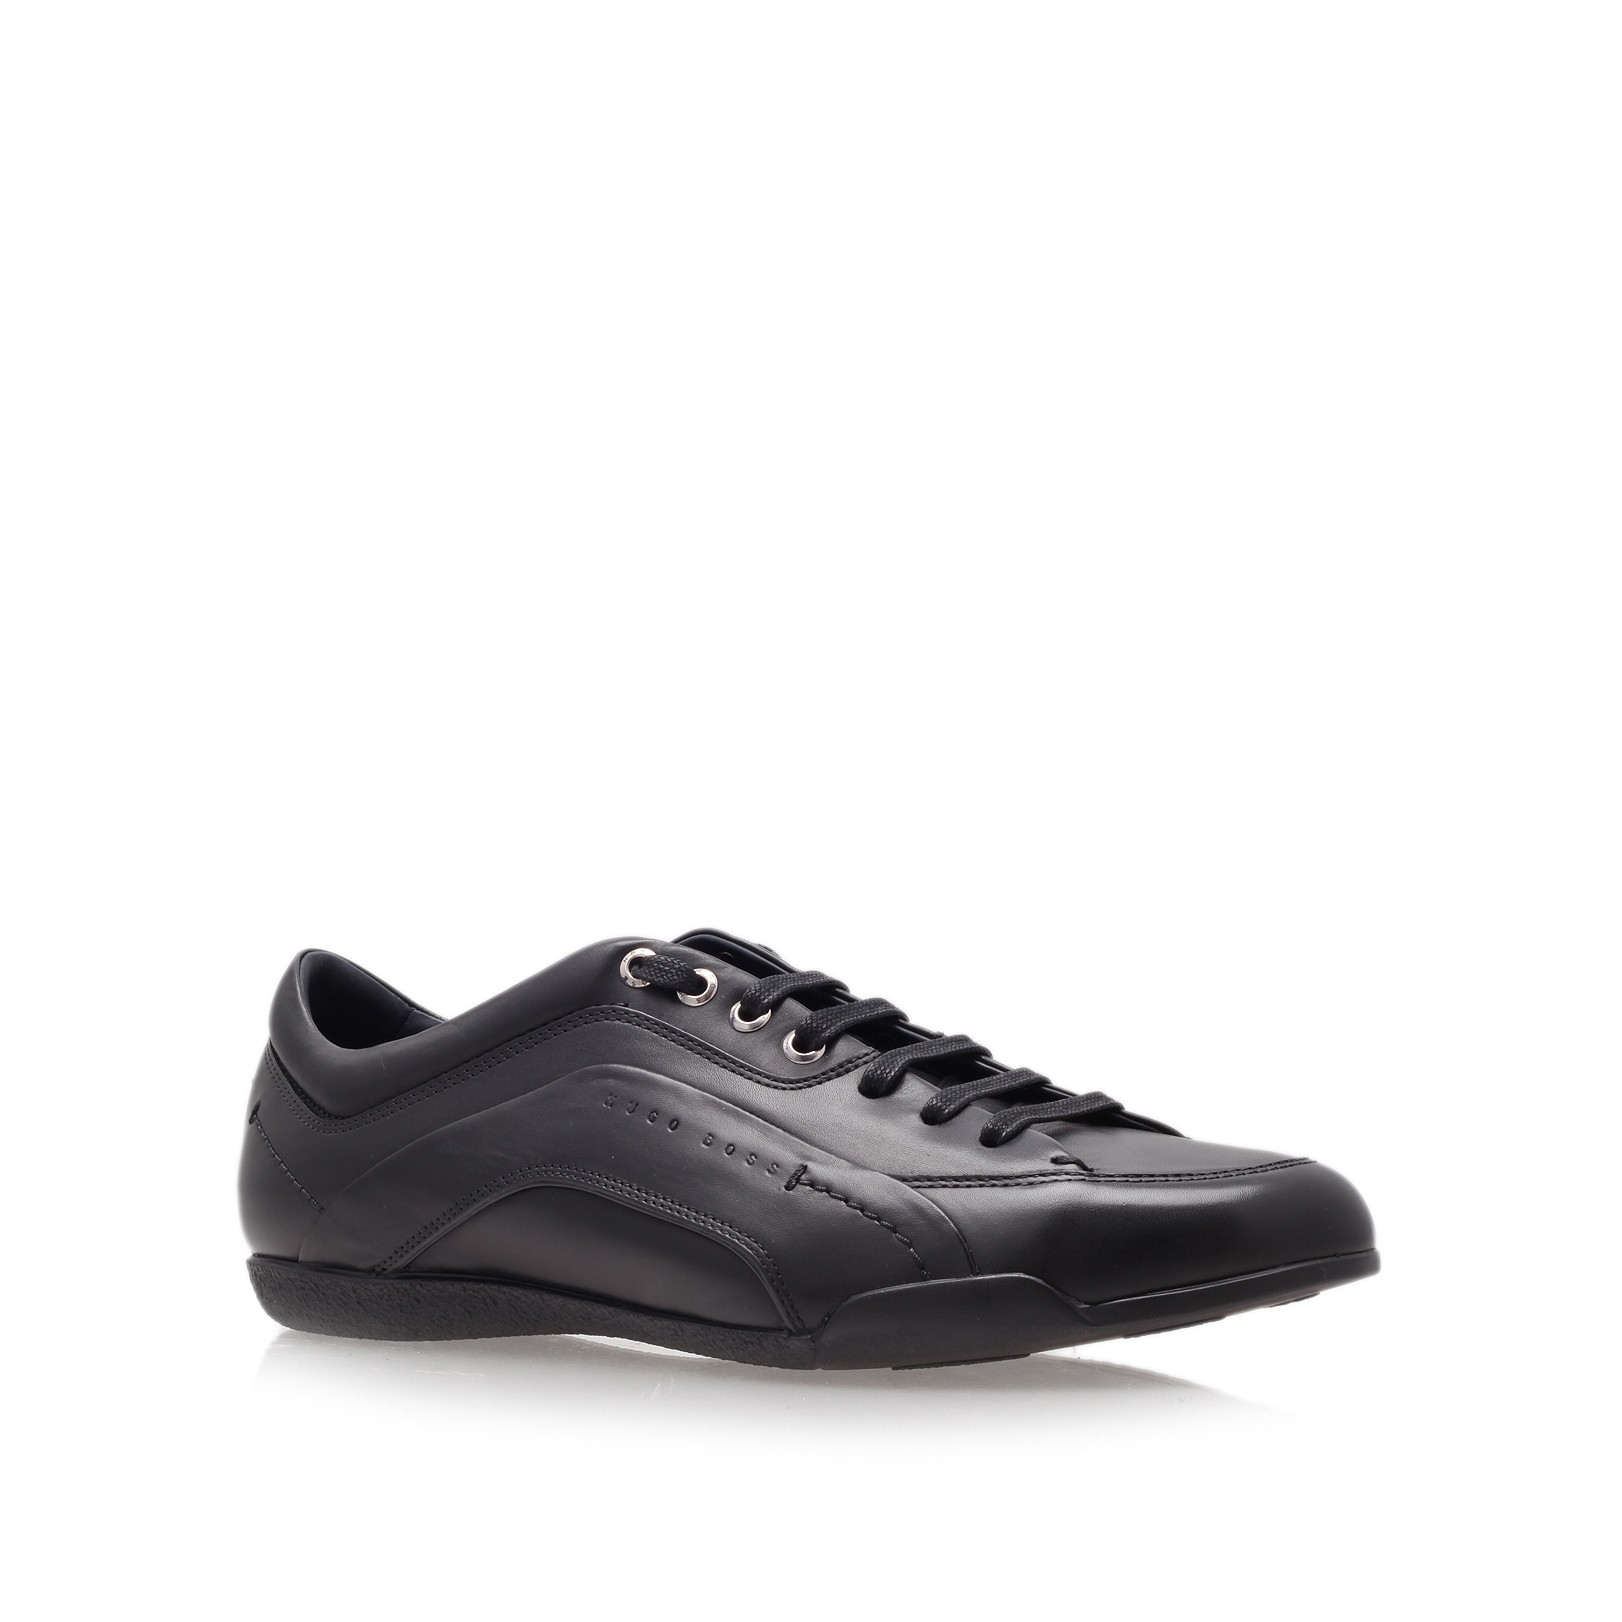 Hugo Boss Sneakers Hugo Boss B Biarton Sneaker In Black For Men Lyst